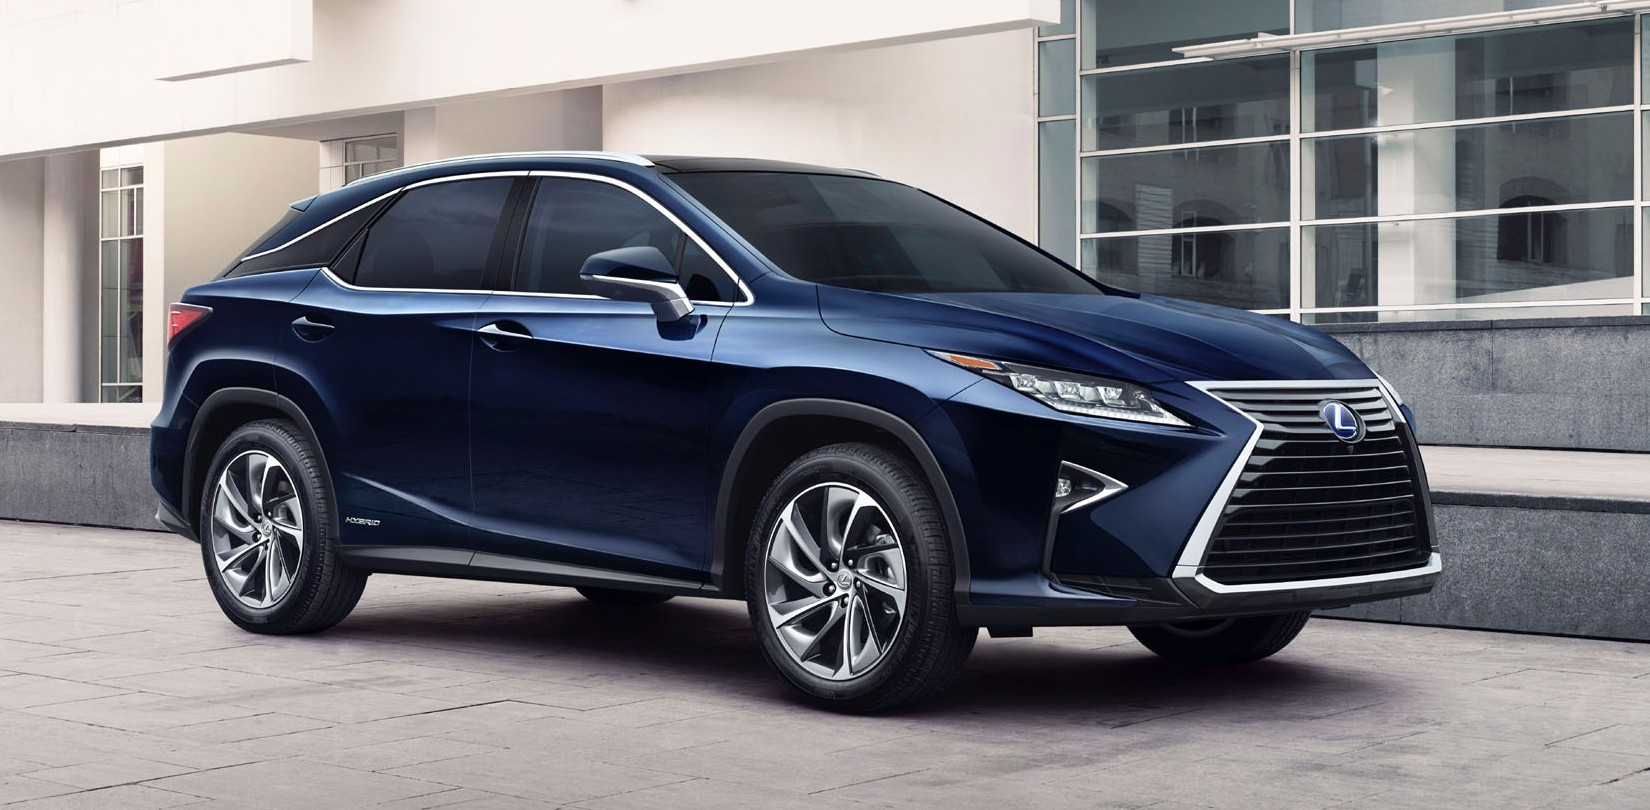 Rx 450h 2015 >> Lexus RX 450h and RX 350 F Sport debut at NYIAS Paul Tan - Image 323747